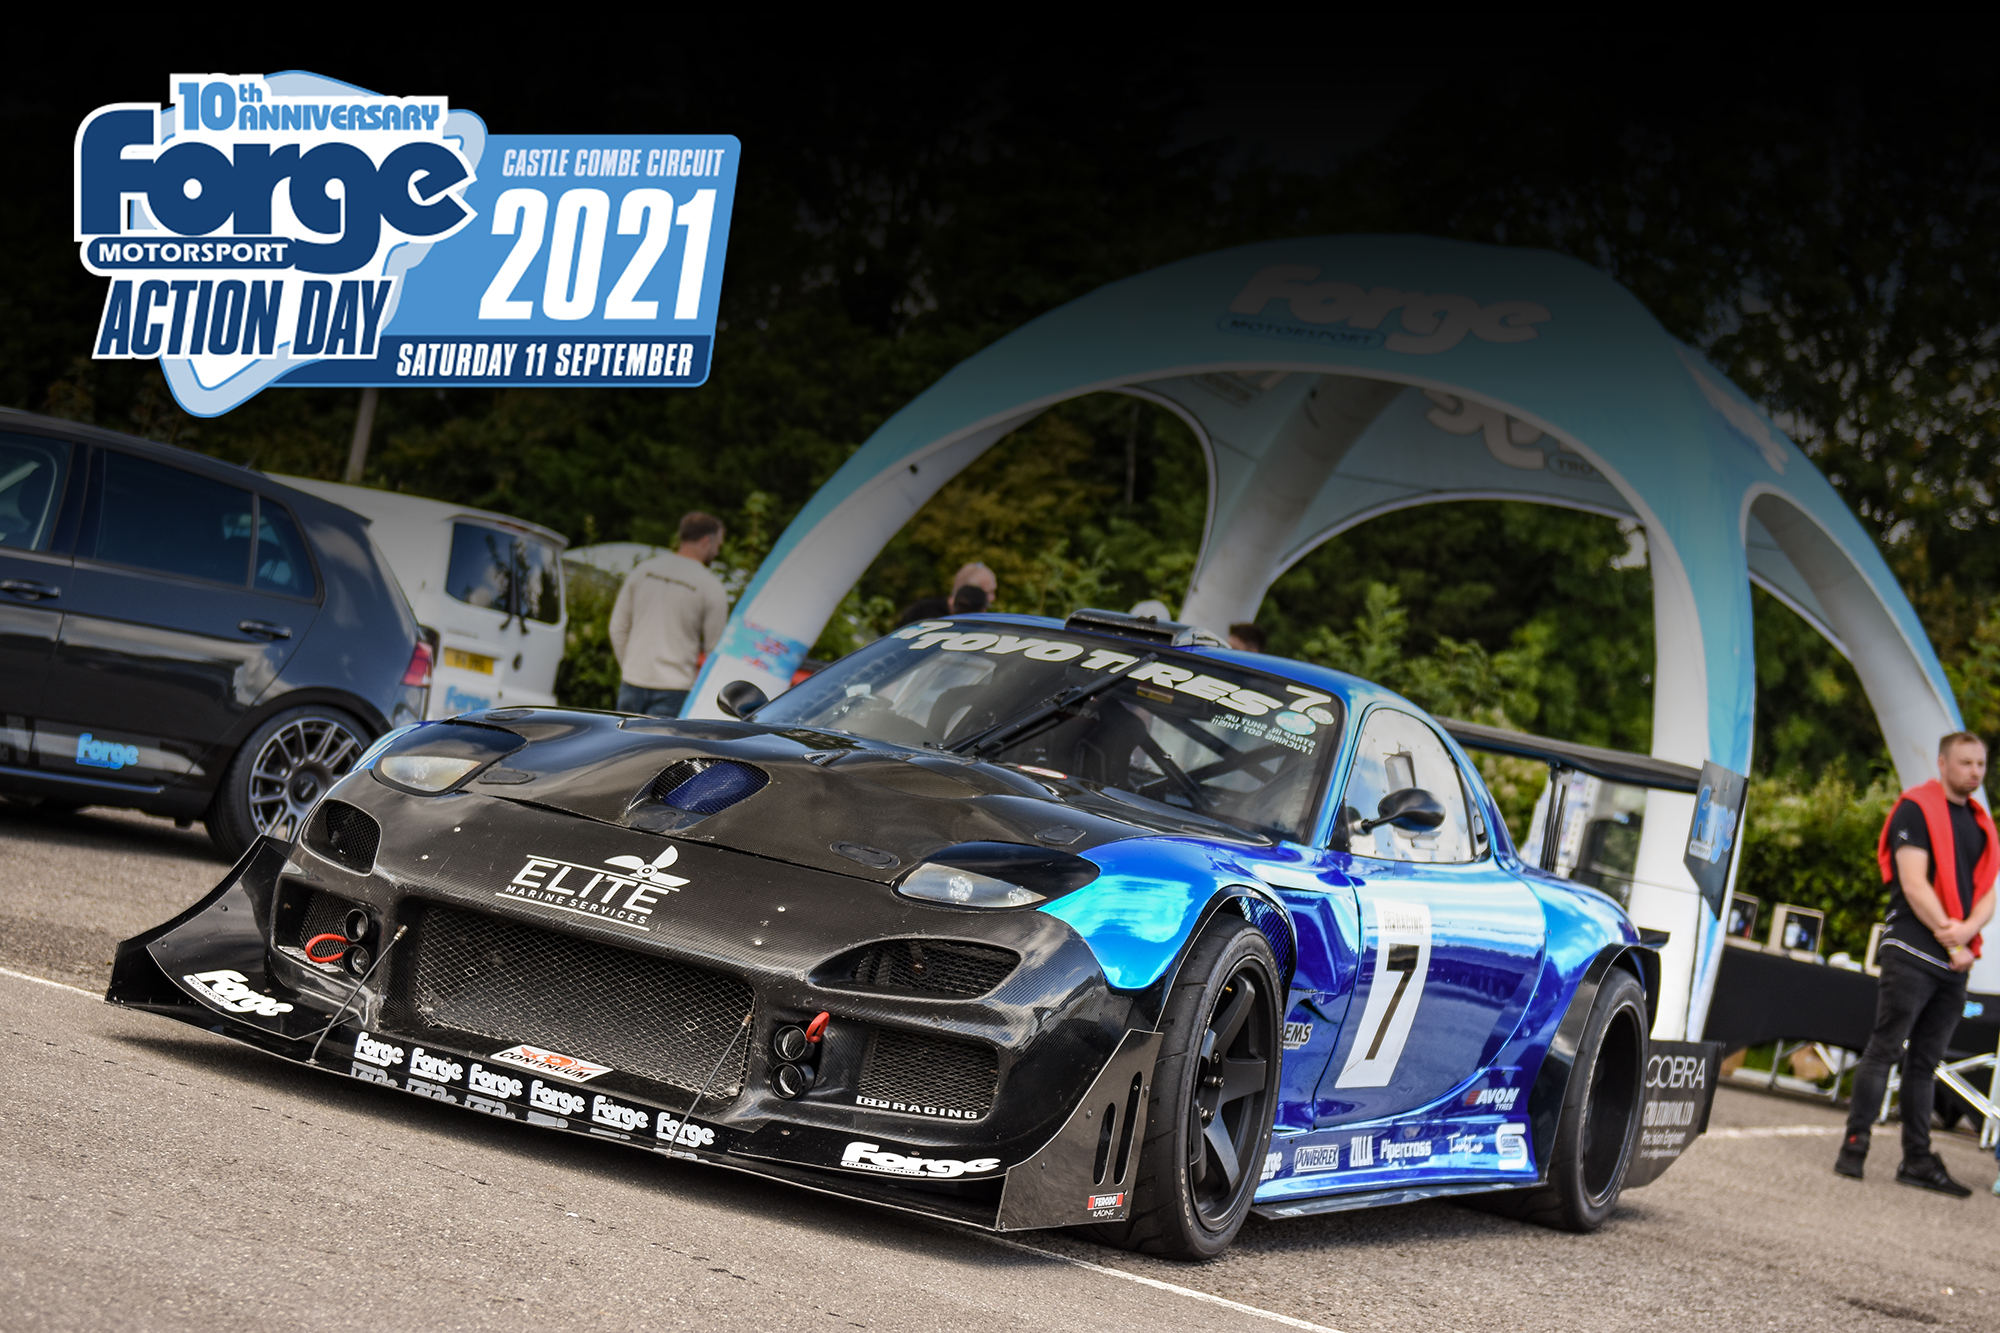 10TH ANNIVERSARY OF FORGE MOTORSPORT PARTNERSHIP TO BE CELEBRATED AT FORGE ACTION DAY 2021